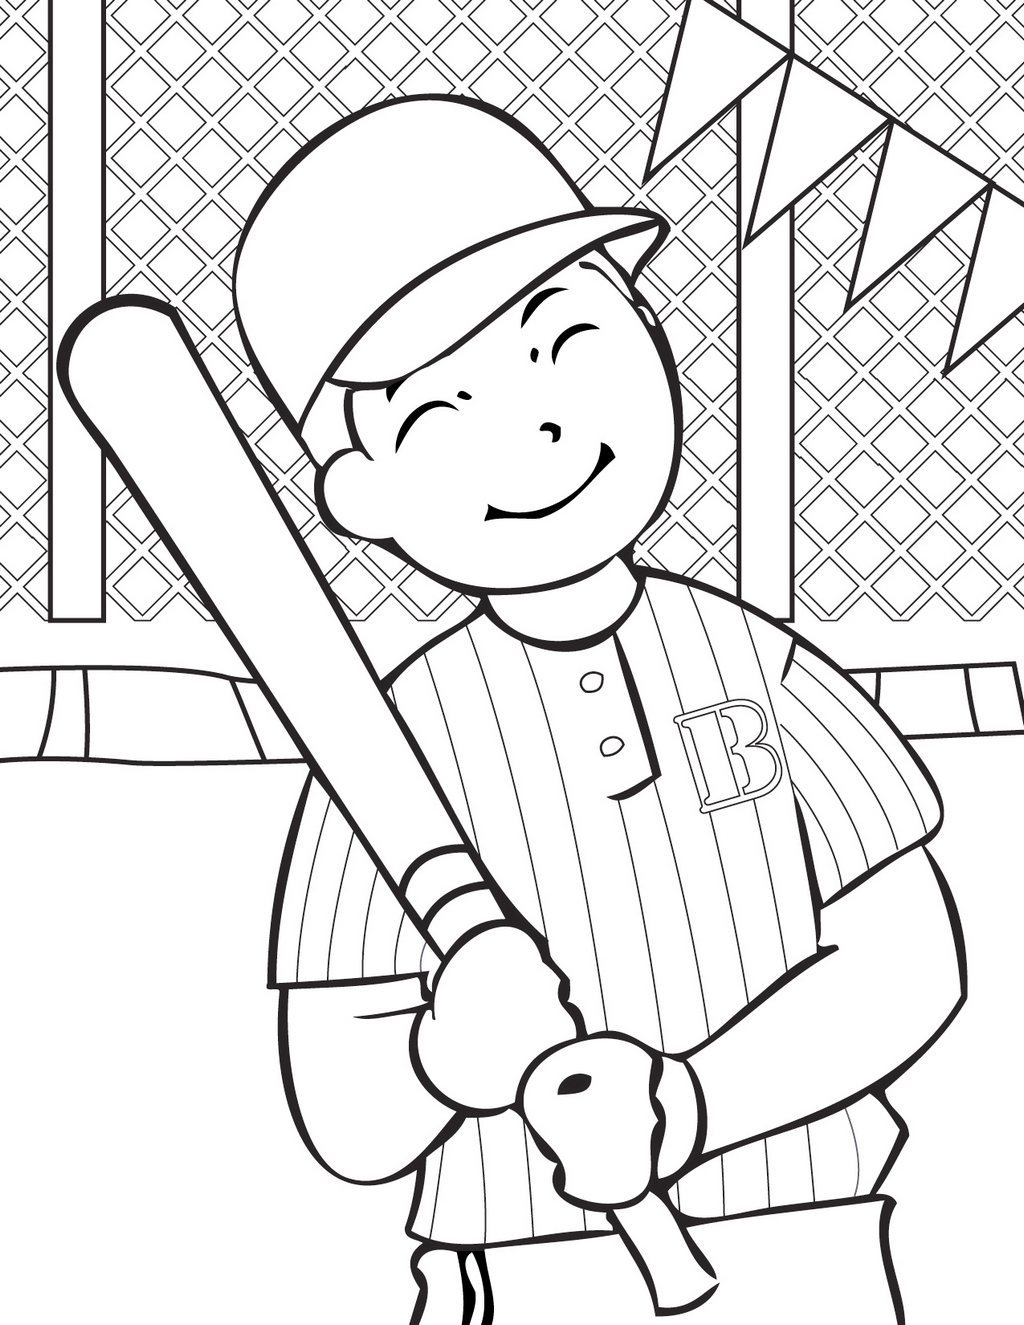 baseball coloring and activity page for children